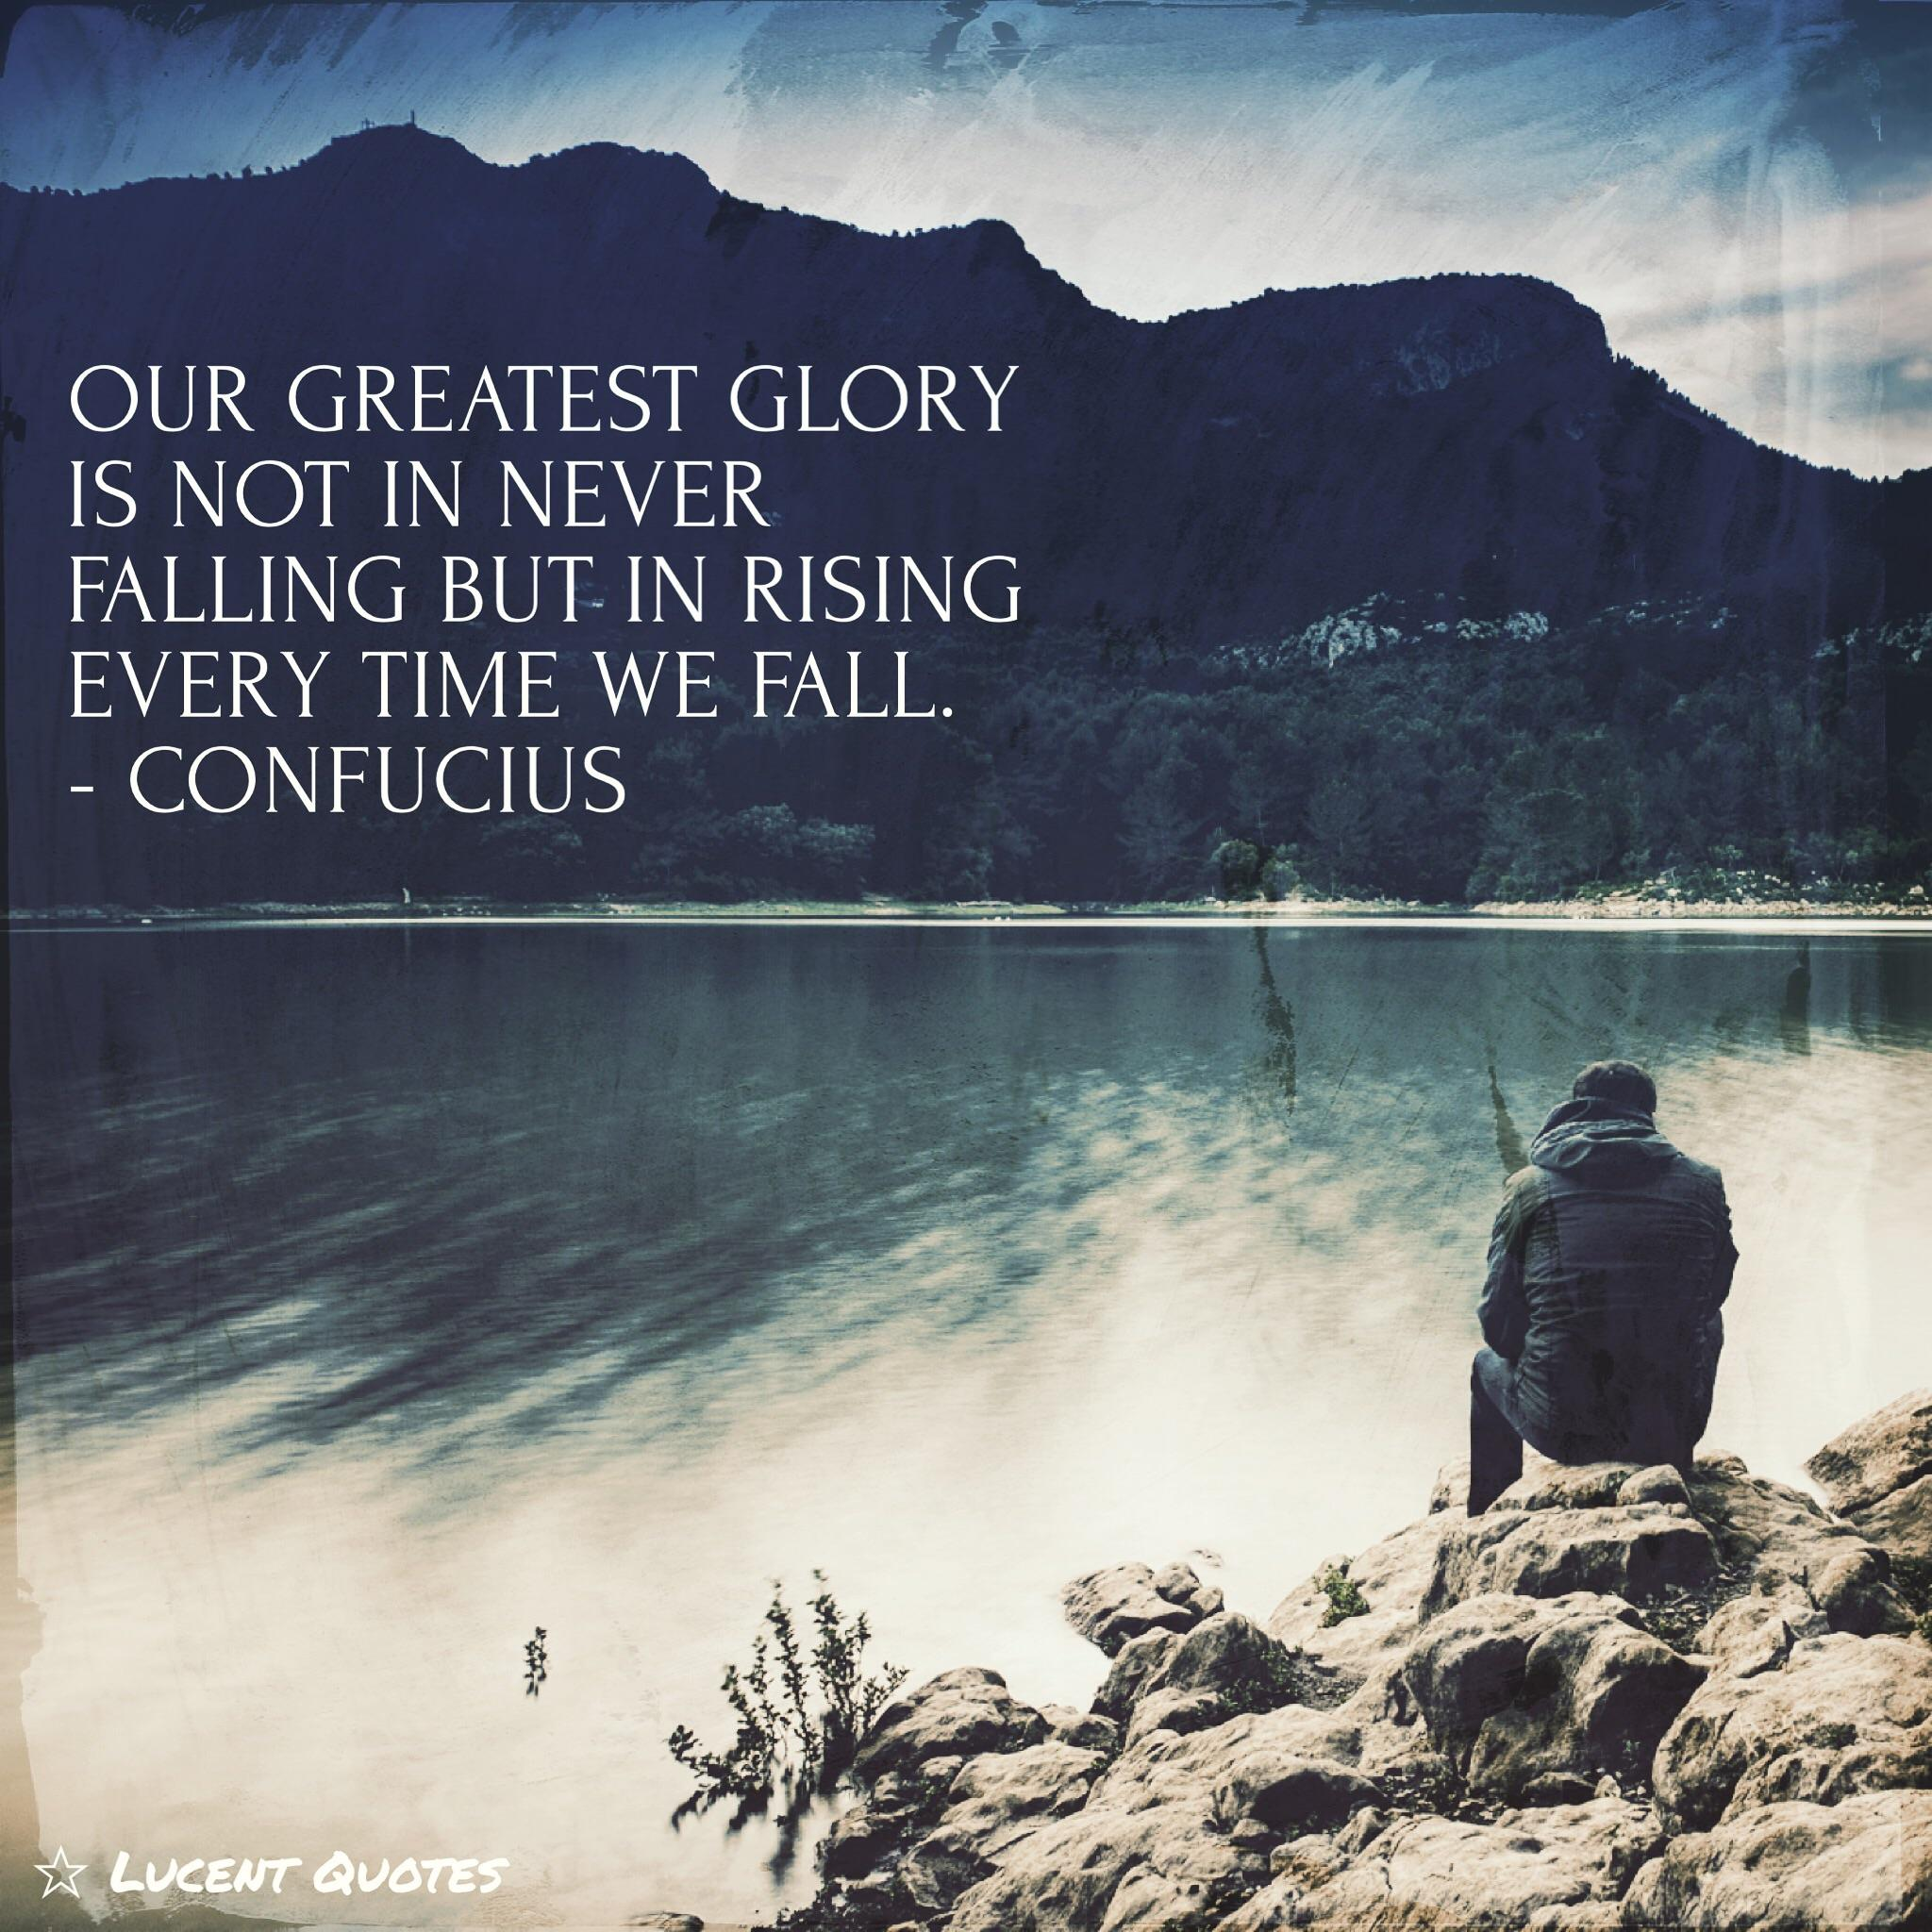 Our greatest glory is not in never falling but rising every time we fall – Confucius [600×600][OC ig: Lucentquotes]